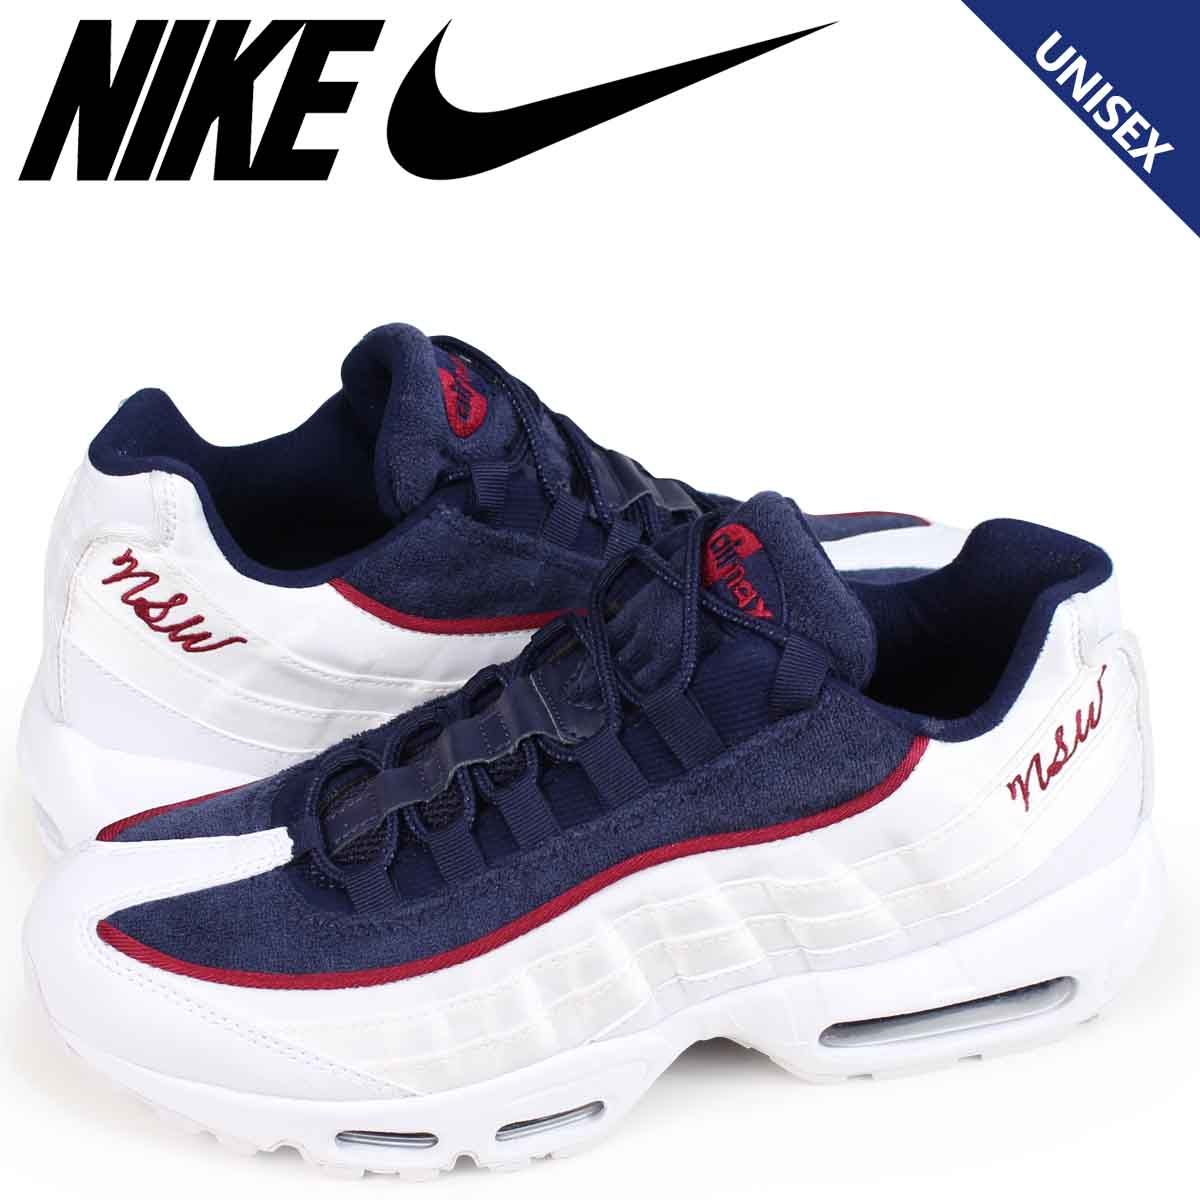 new concept bcb5d 06318 Nike NIKE Air Max 95 sneakers Lady's men WMNS AIR MAX 95 LX AA1103-100 white